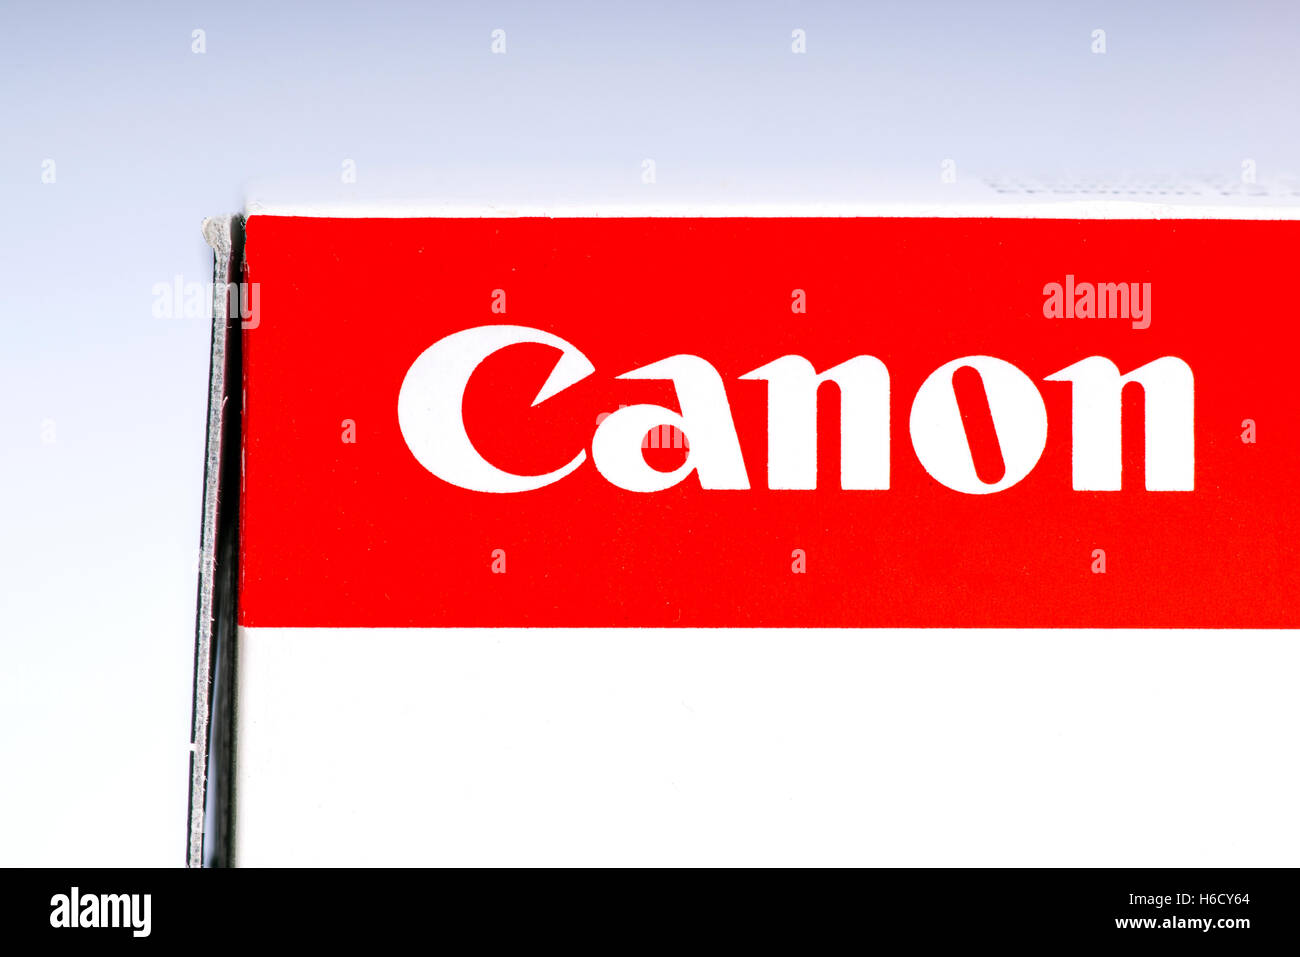 LONDON, UK - OCTOBER 21ST 2016: A close-up shot of the Canon company logo on the packaging of one of their products. - Stock Image